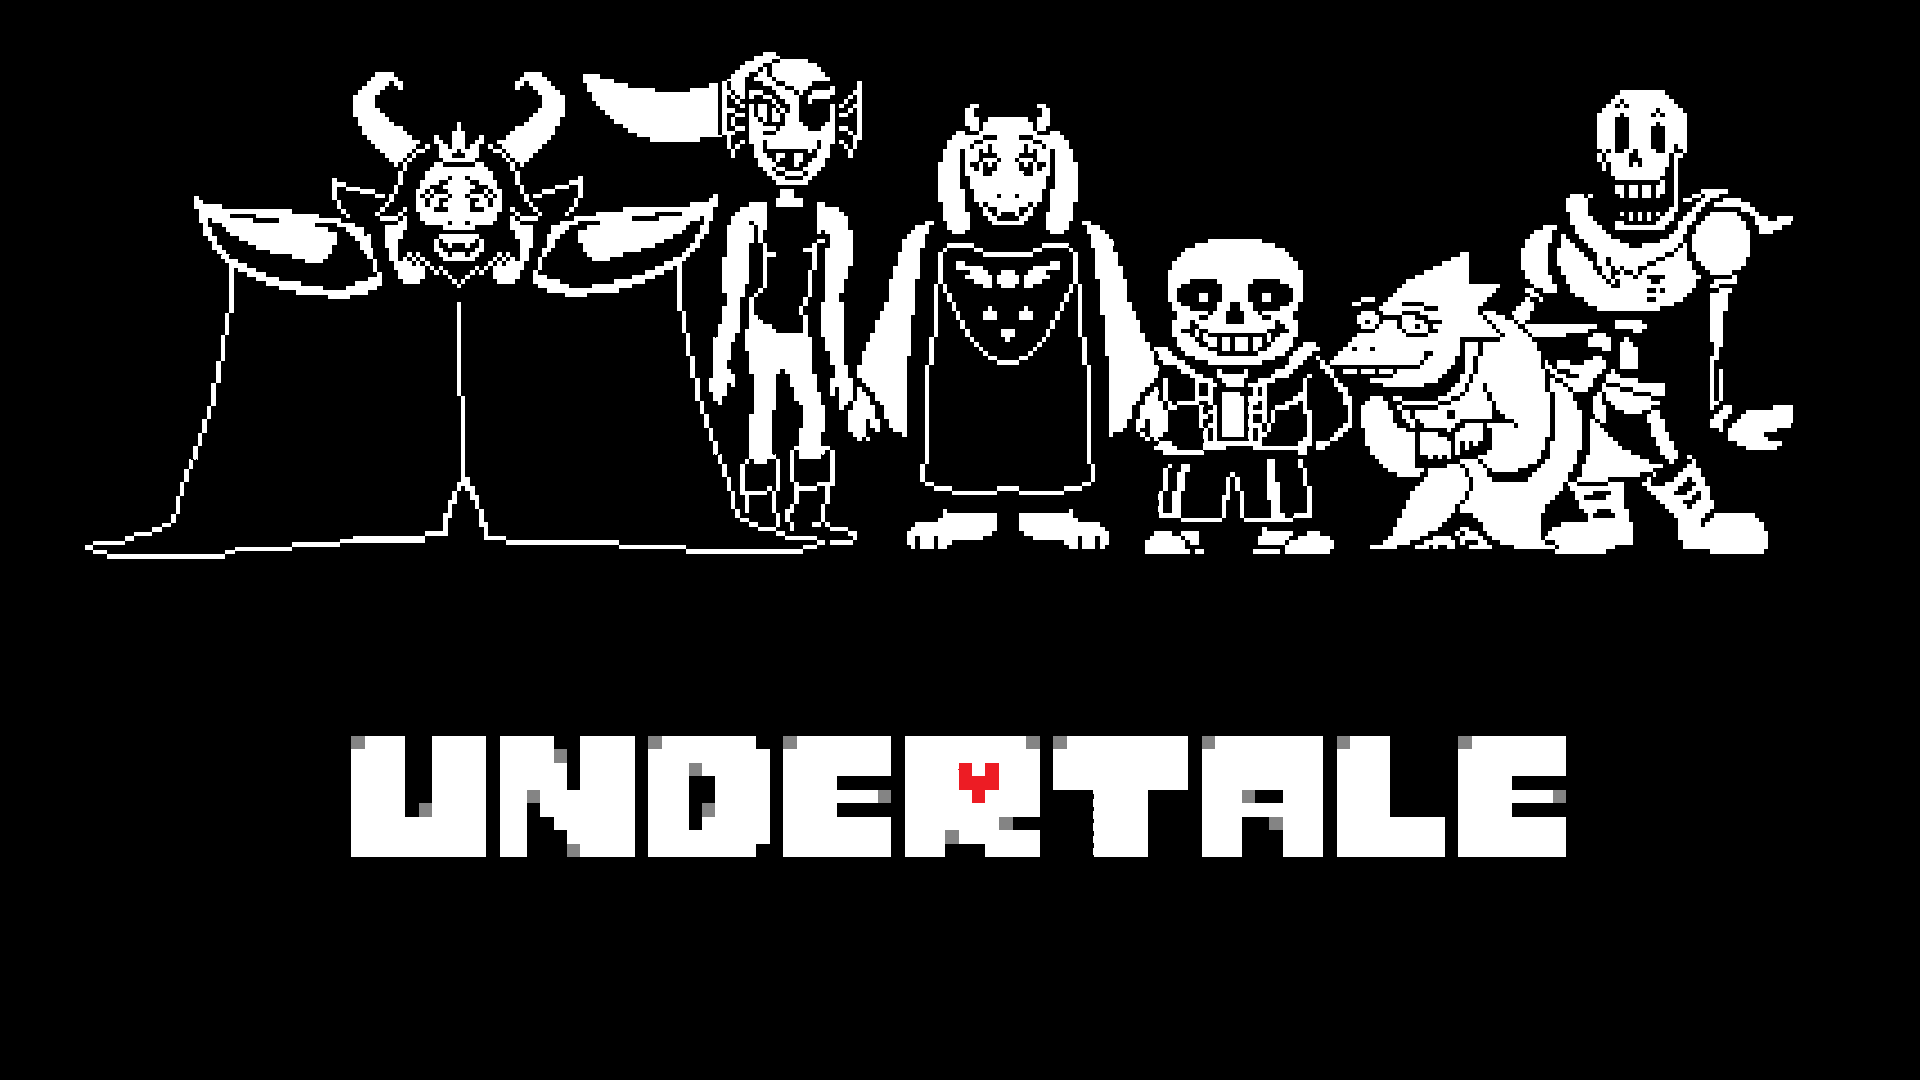 Making Sans In Roblox Undertale Outfit Sans Battle Music Coherent Situational Music In Undertale By Alex Gleich We Audio Game Audio Lookout Medium